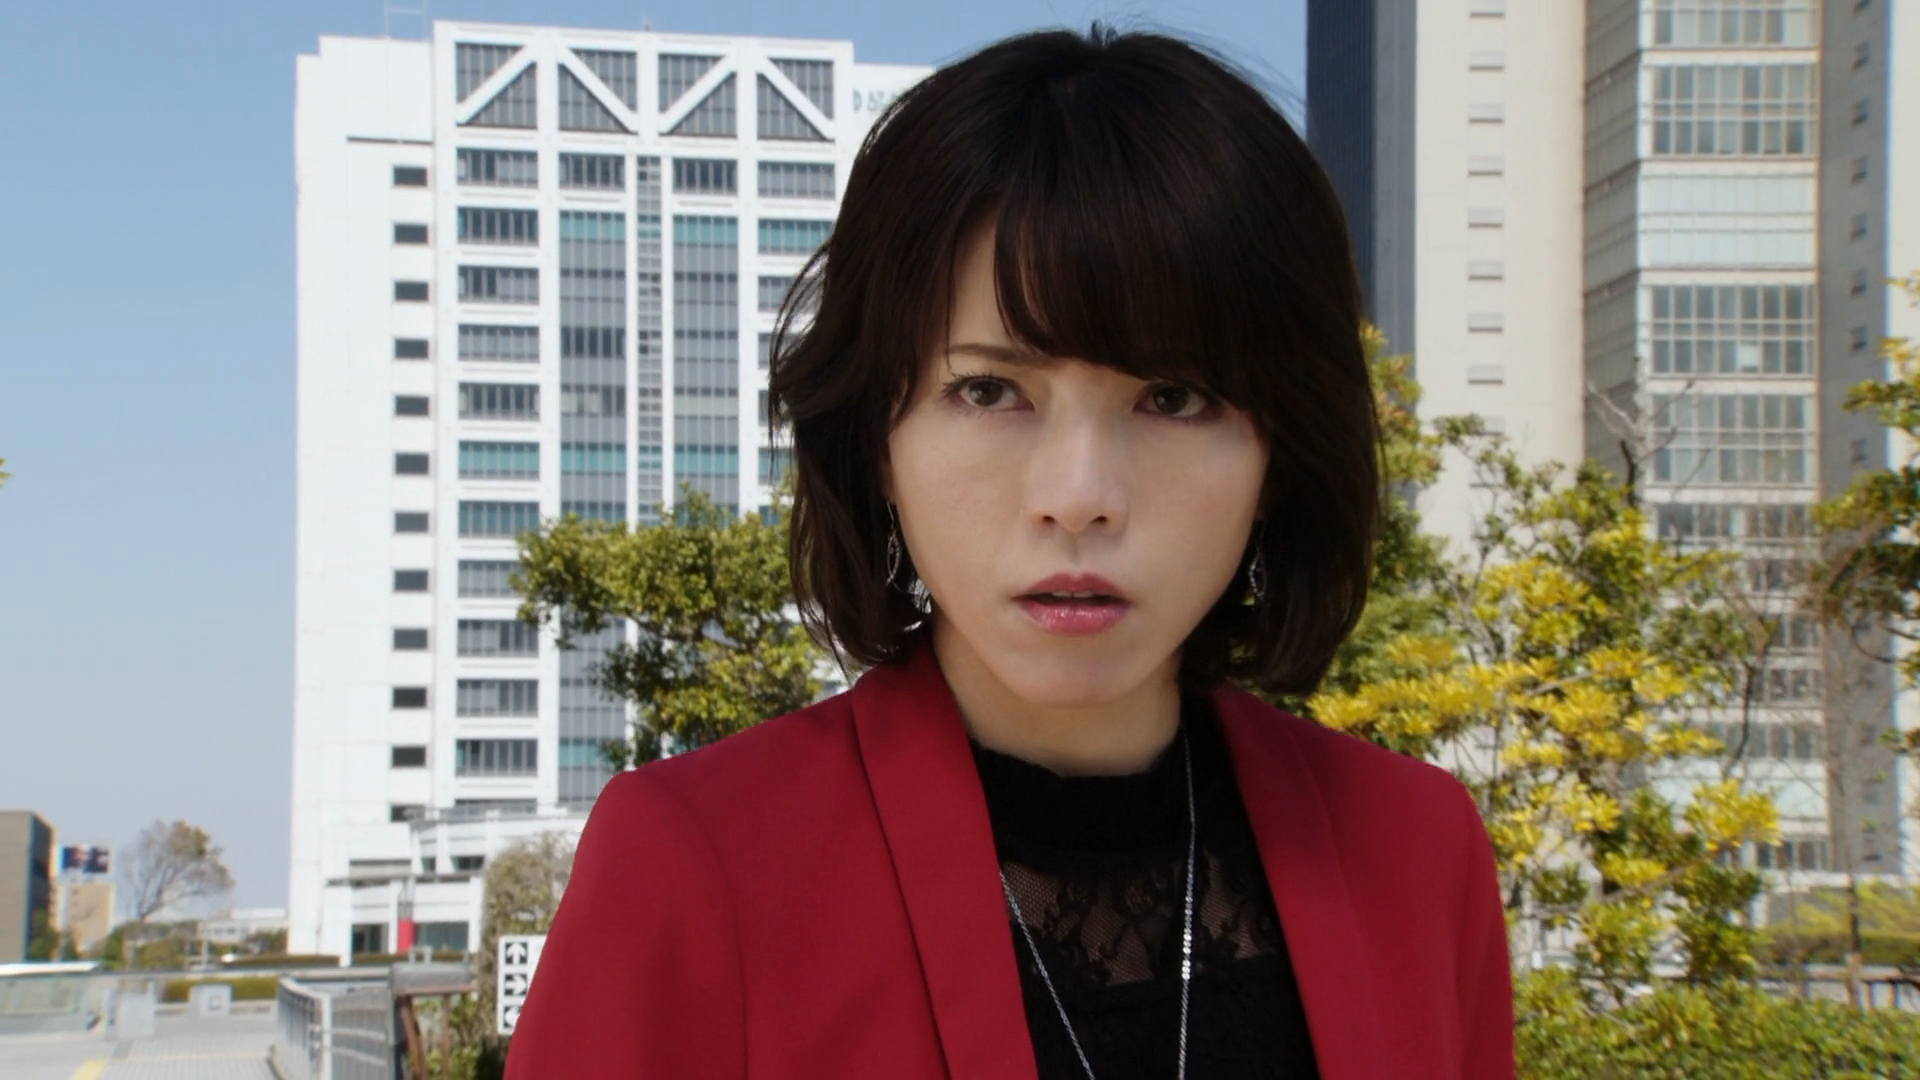 Yuko Kitajima | Kamen Rider Wiki | FANDOM powered by Wikia